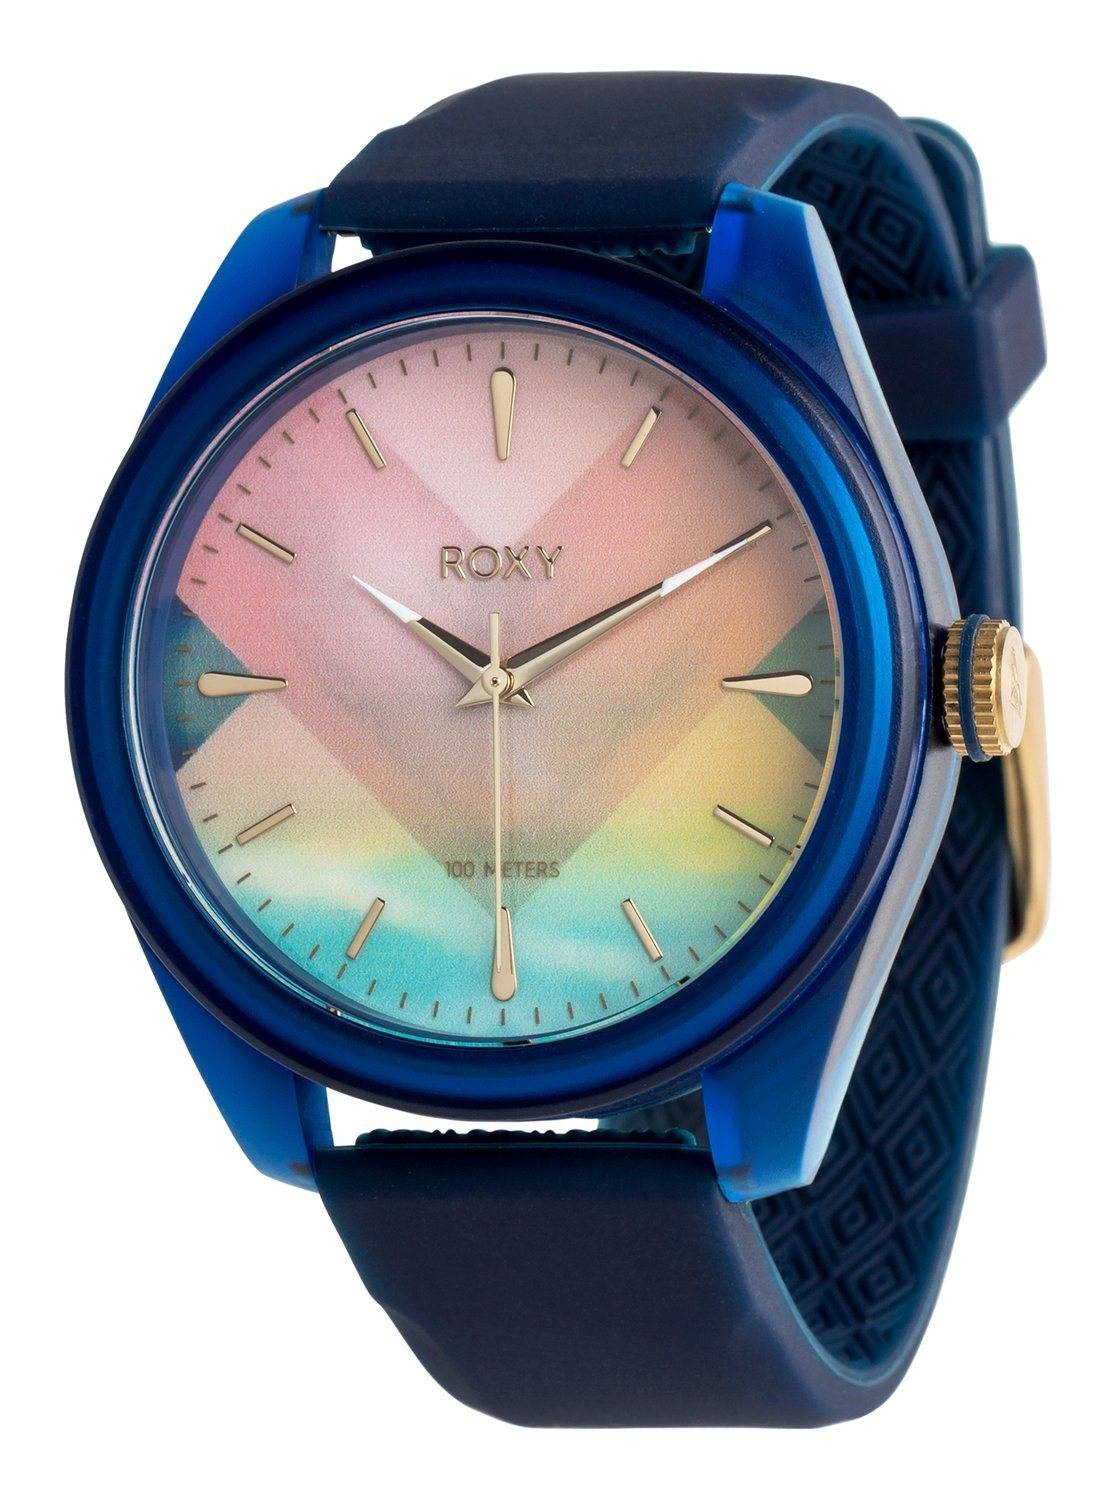 Roxy Analoge Uhr Popadopalis Blue depths